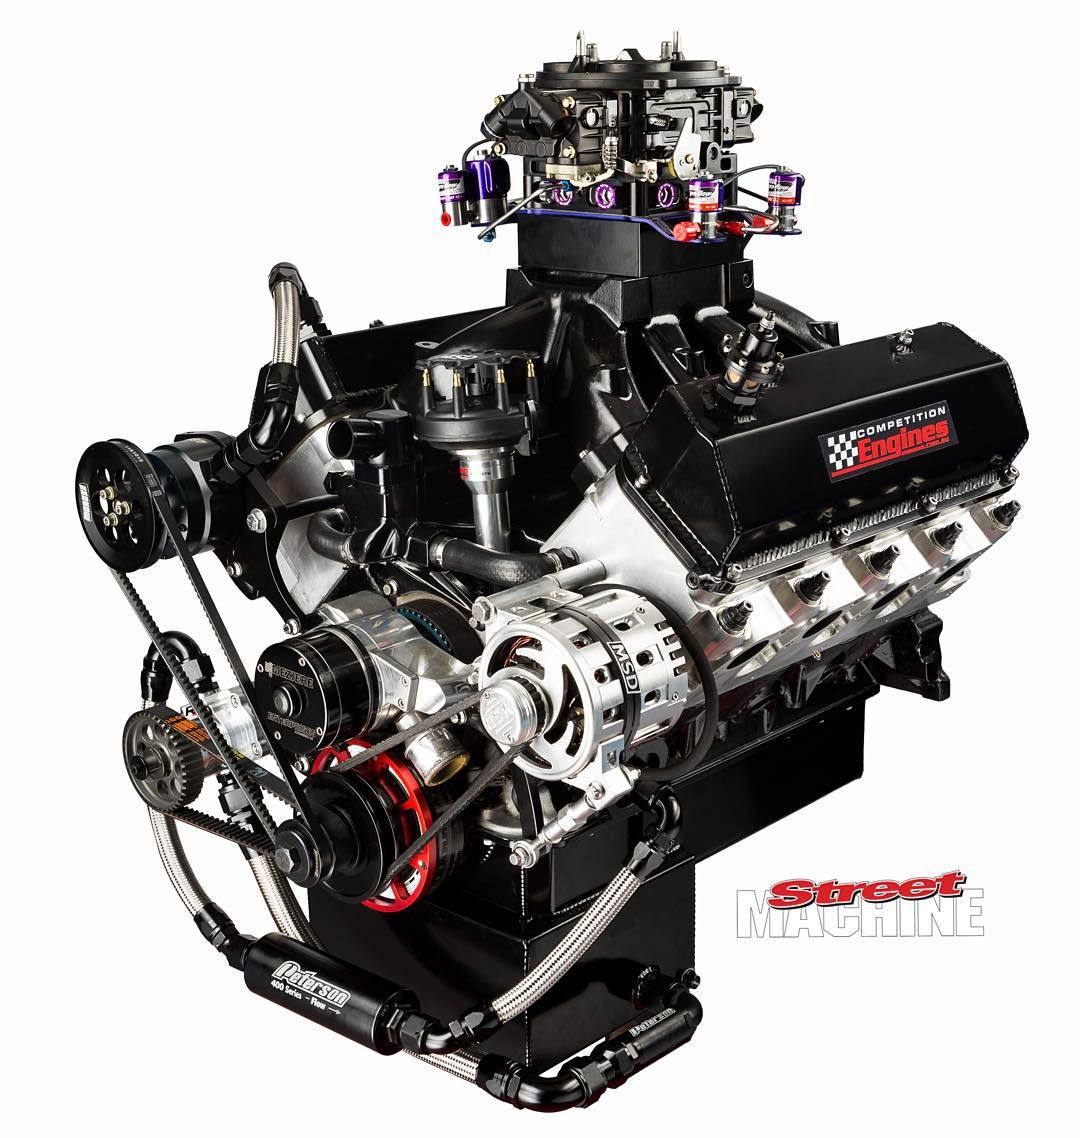 427ci windsor built by competition engines making 850hp with 300hp worth of nitrous to boot